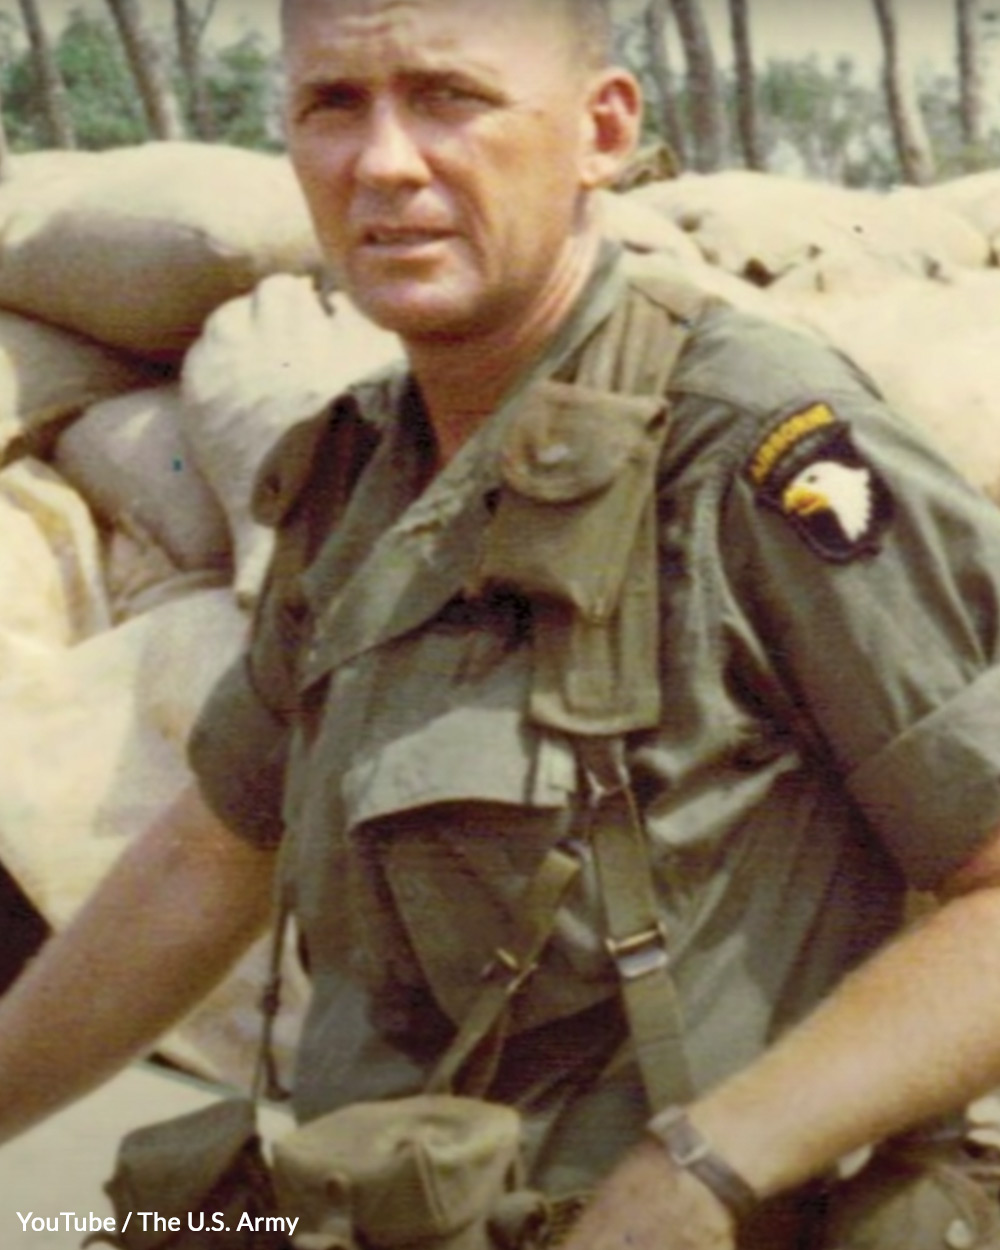 Puckett, Jr. was the first commander of the first ever Army Ranger unit, the 8th Army Ranger Battalion.